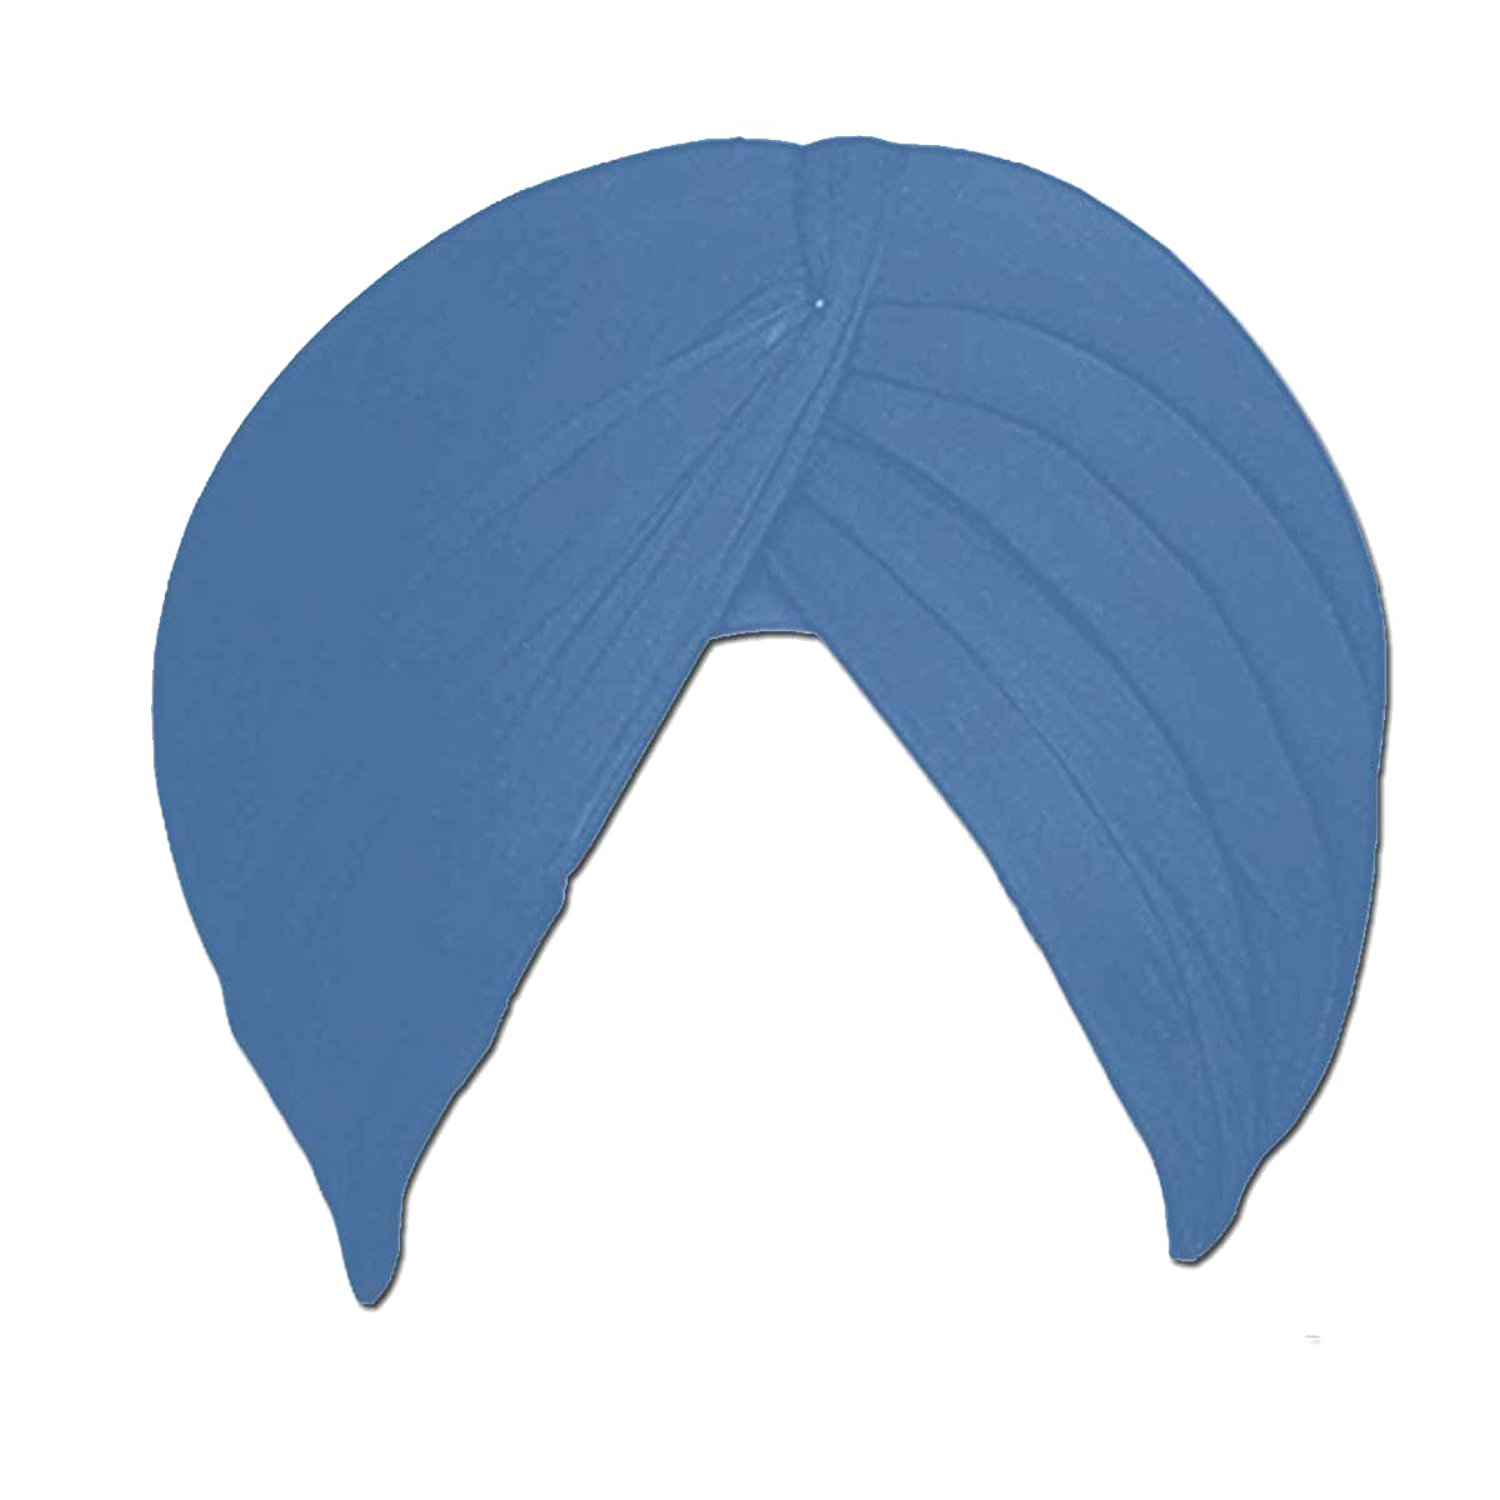 Sikh Turban PNG Images Transparent Free Download.